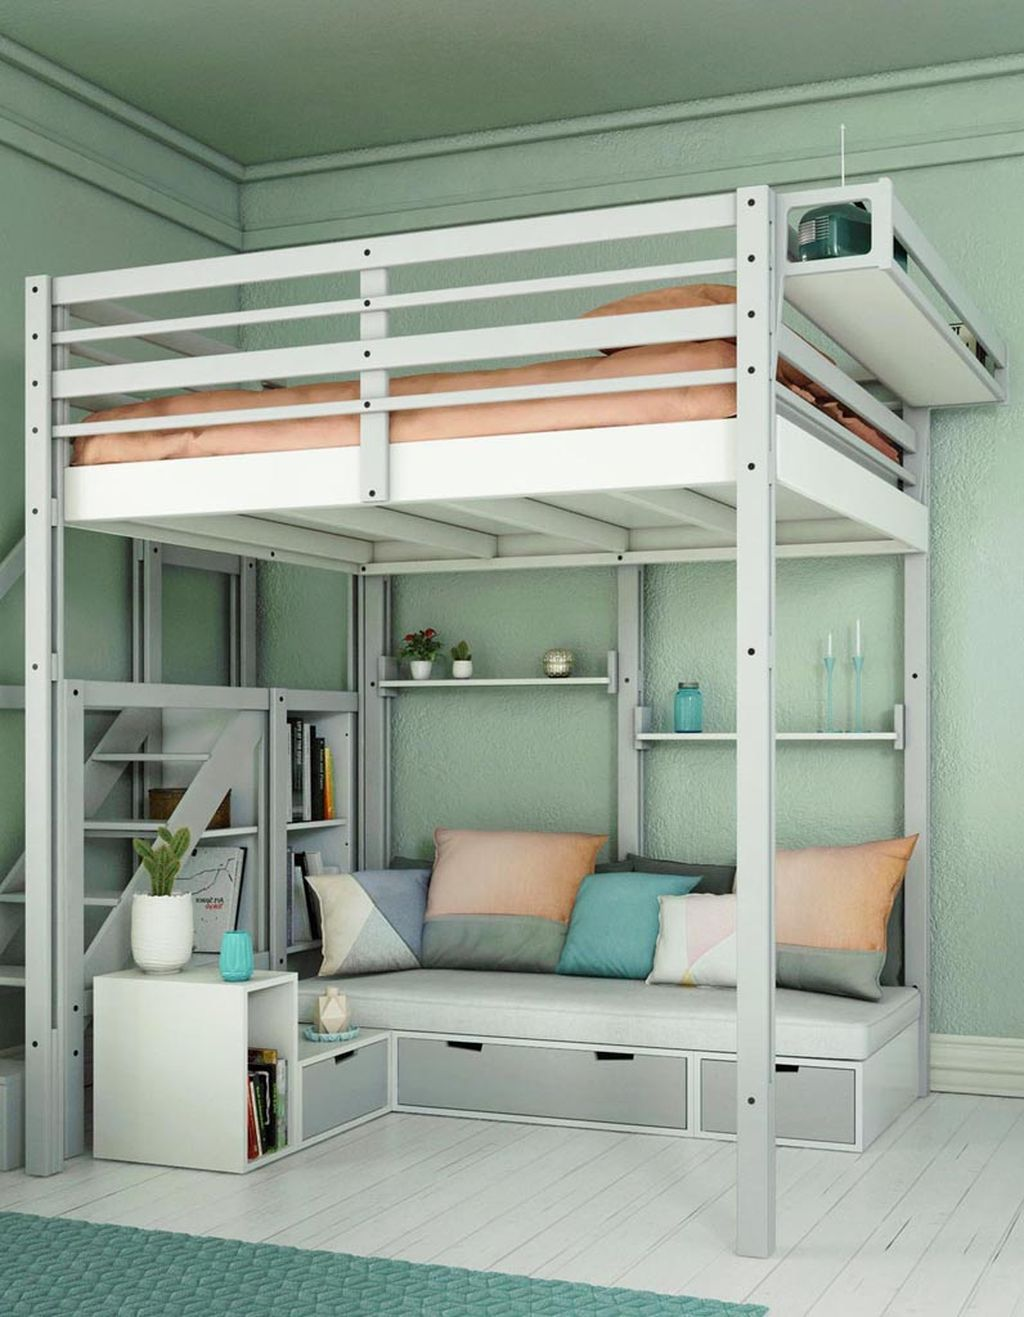 75 Cute Boys Bedroom Design Ideas for Small Space Small